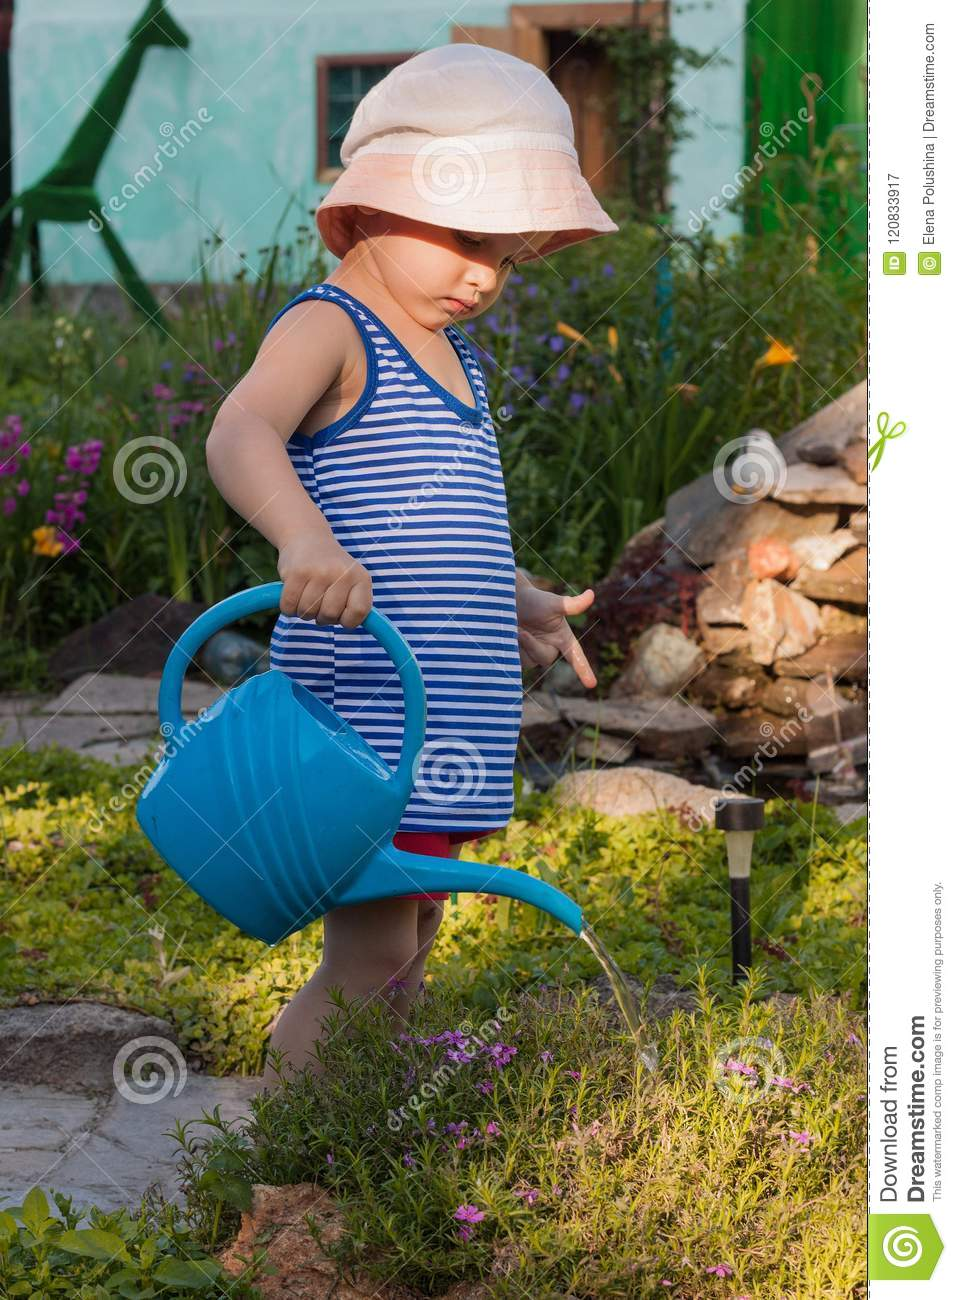 Cute toddler boy in straw hat watering plants in the garden at summer f84768c8949f